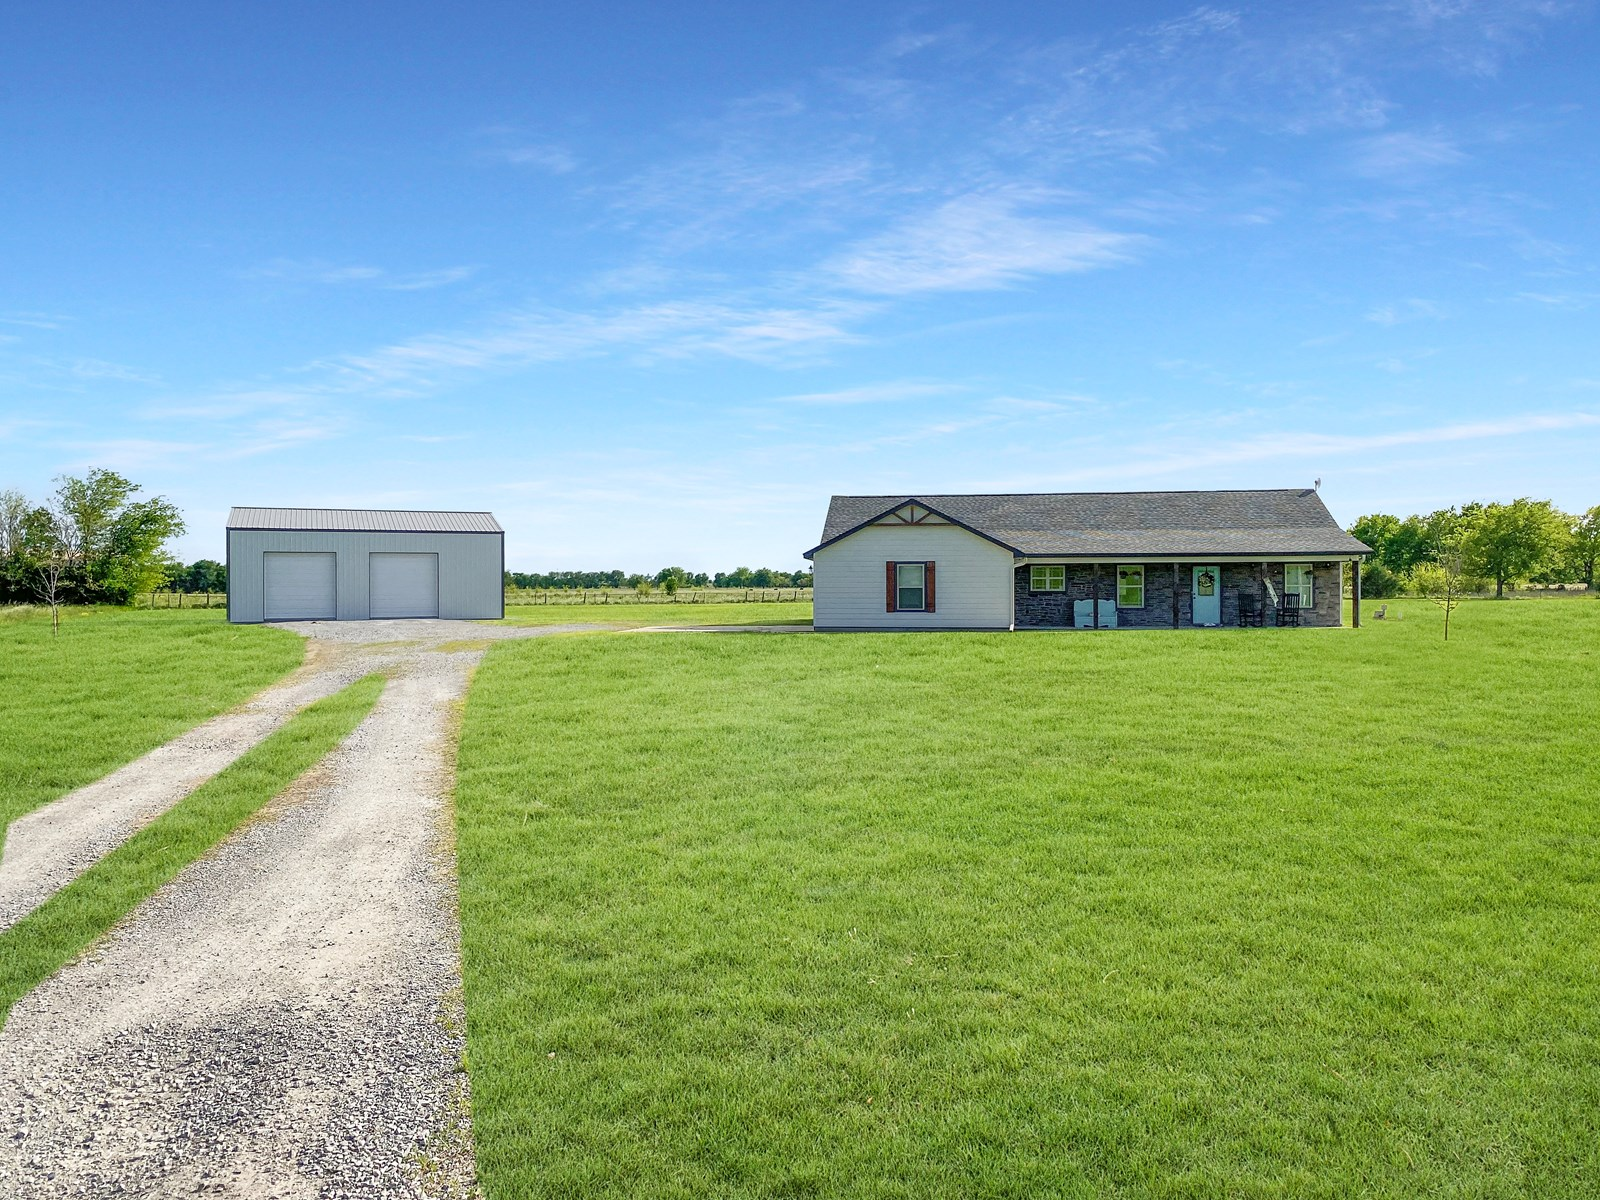 Country Home For Sale in Pryor, Oklahoma